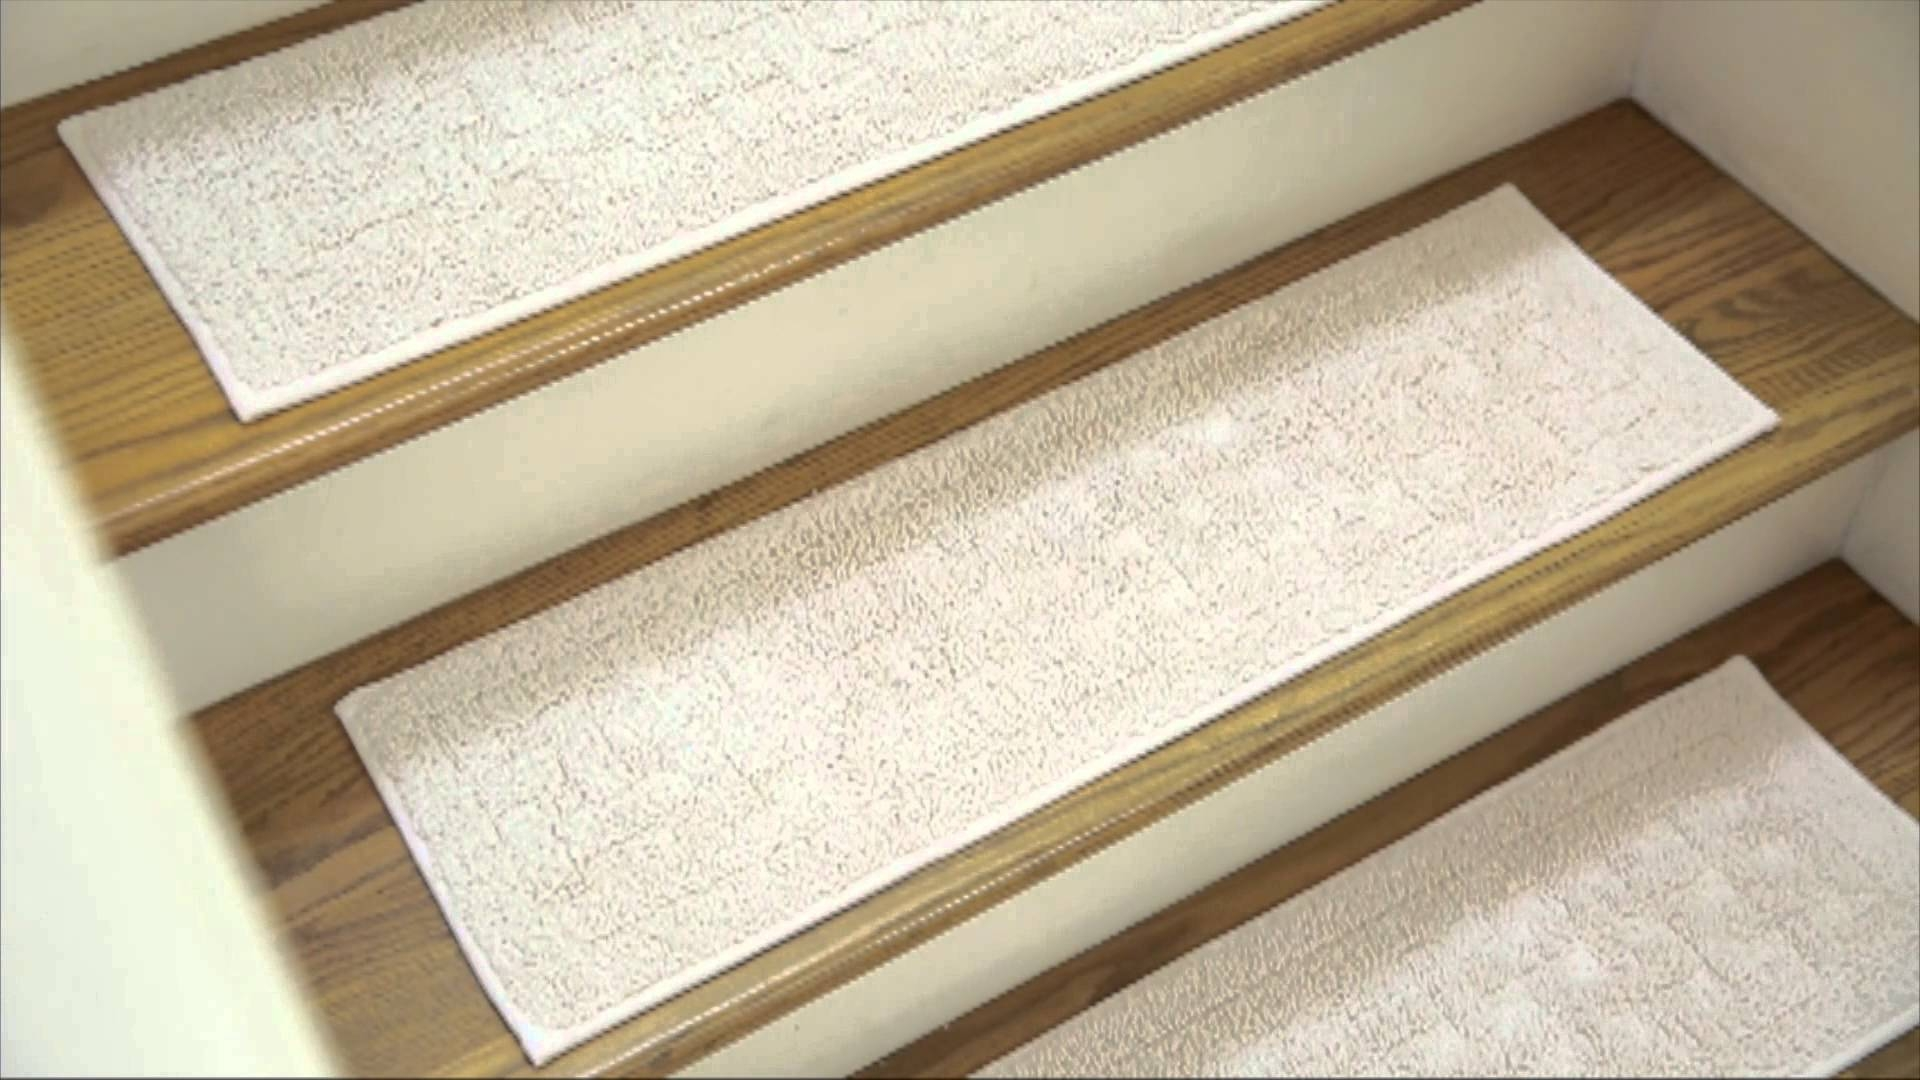 Harrison Weave Washable Area Rugs Improvements Catalog Youtube For Stair Slip Guards (#16 of 20)